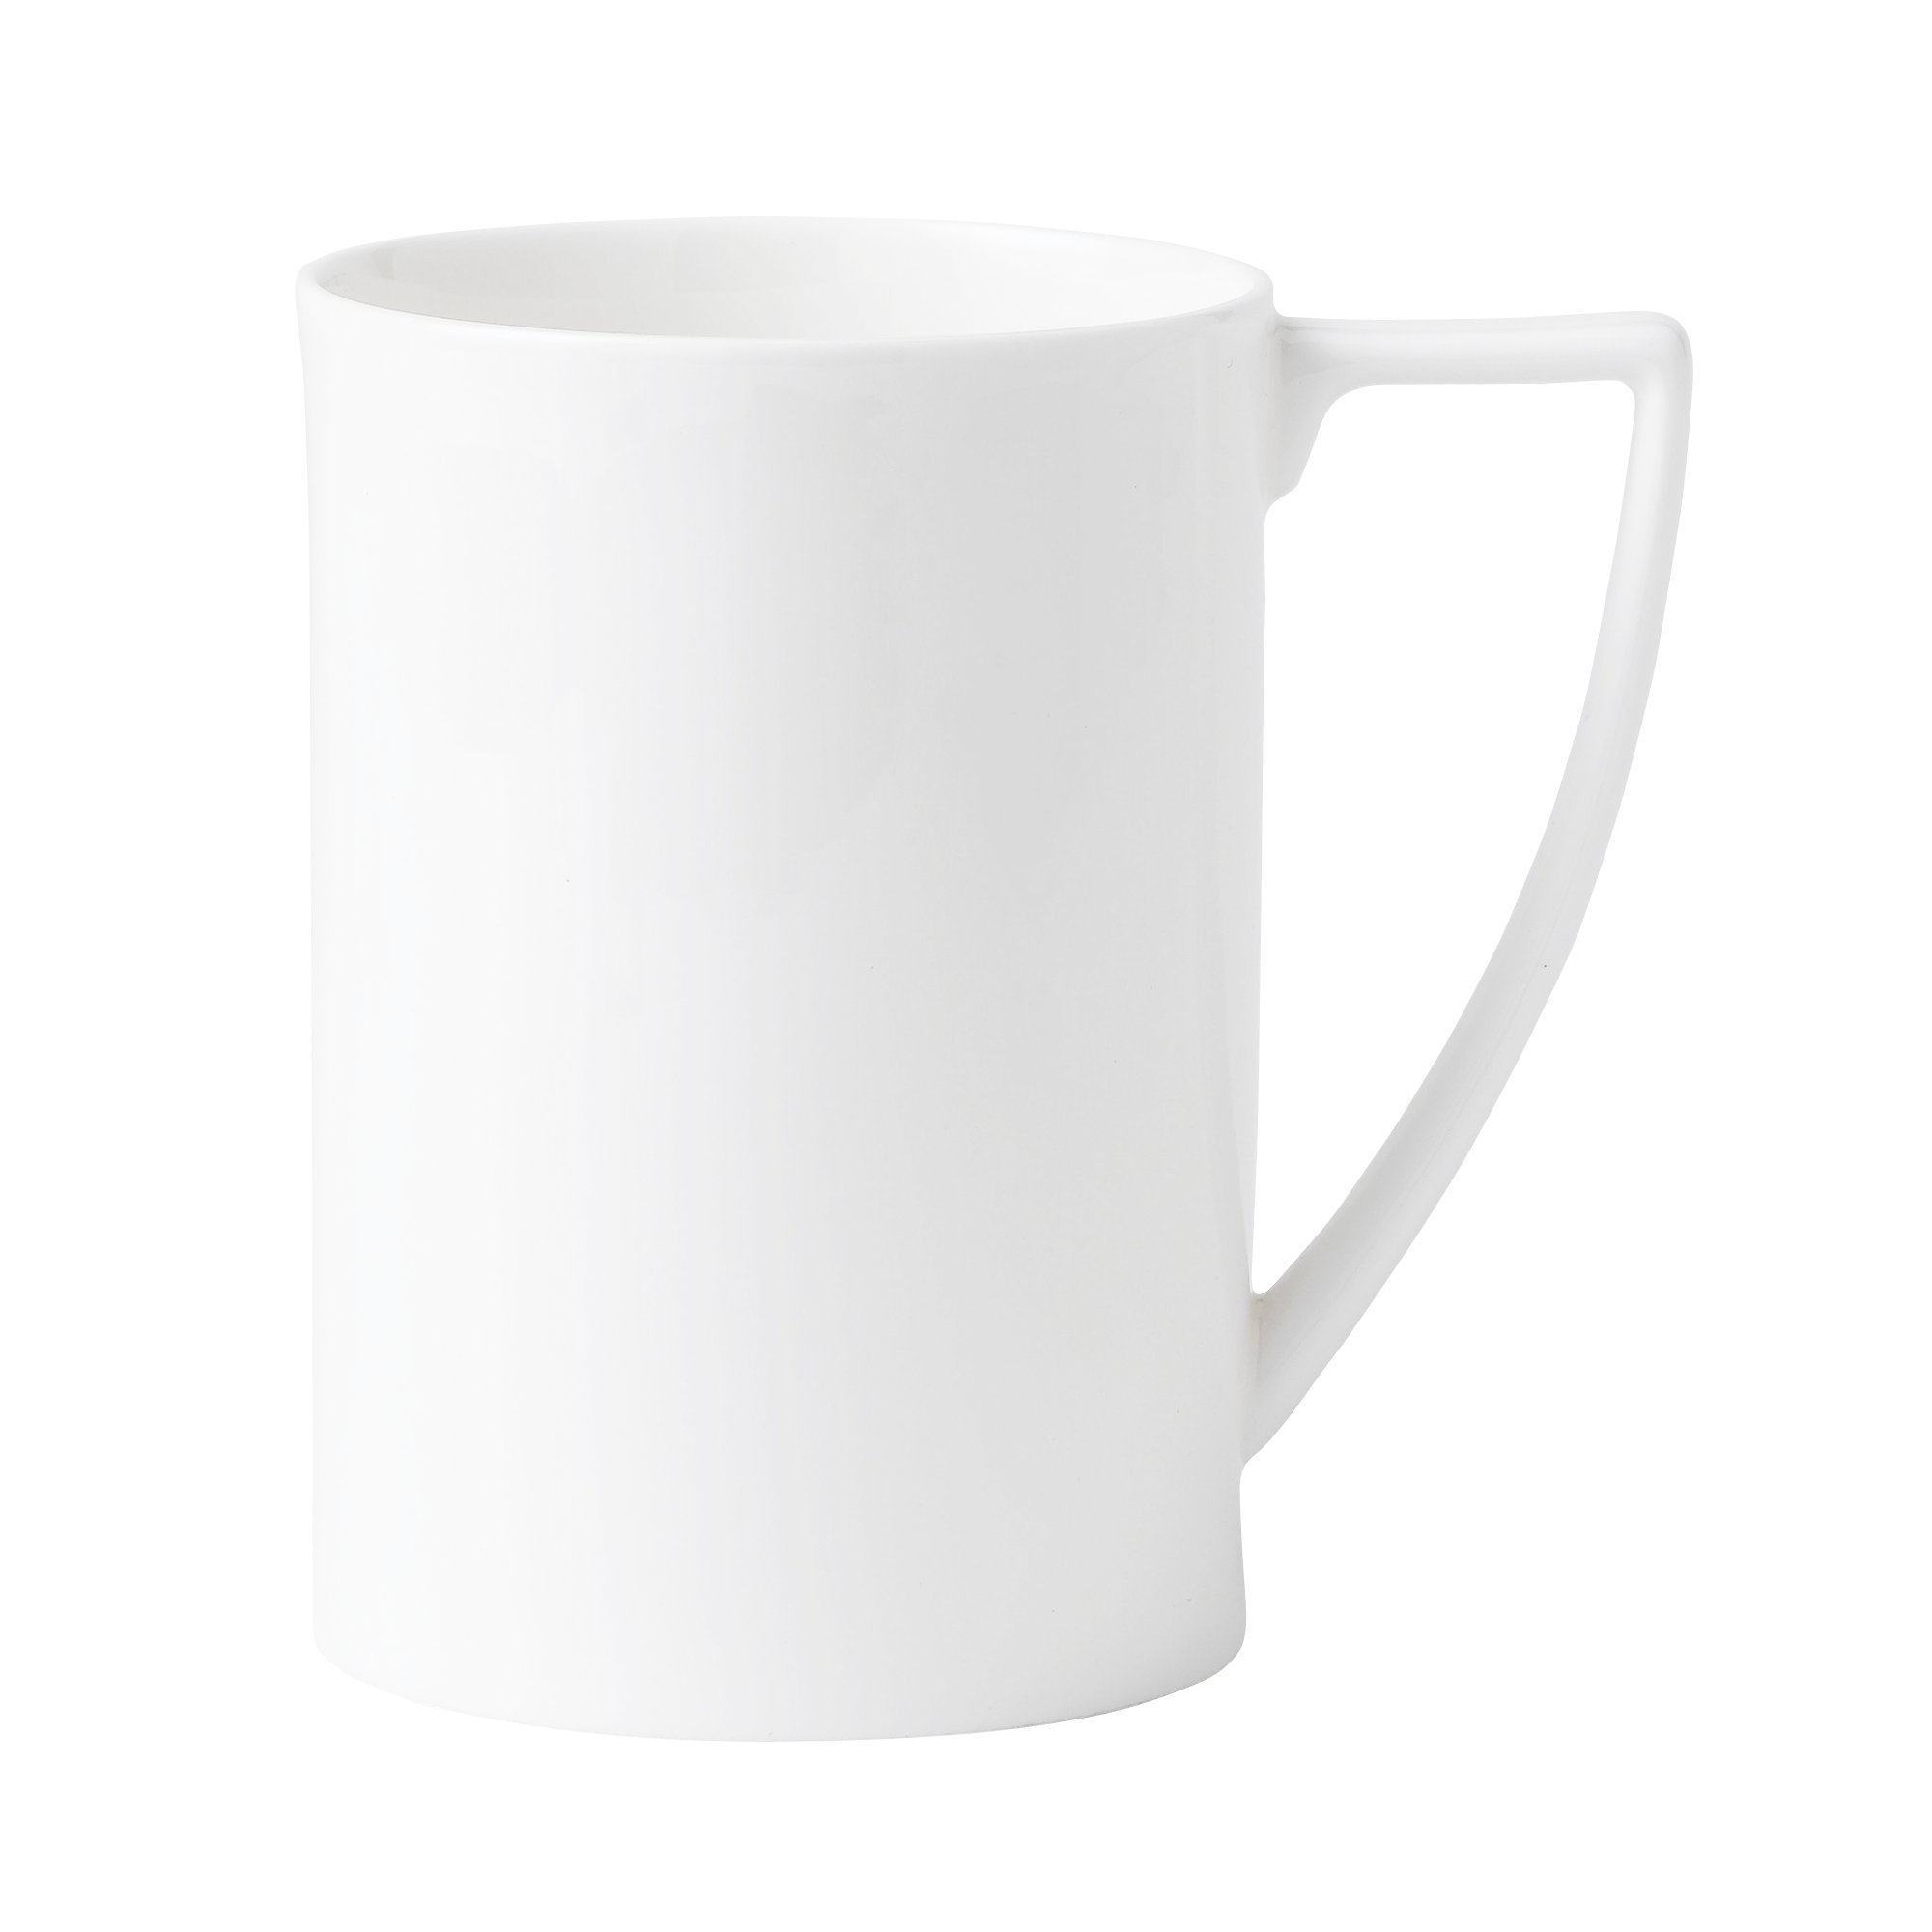 Wedgwood Bone China Mug 0.85 Pt, White by Wedgwood